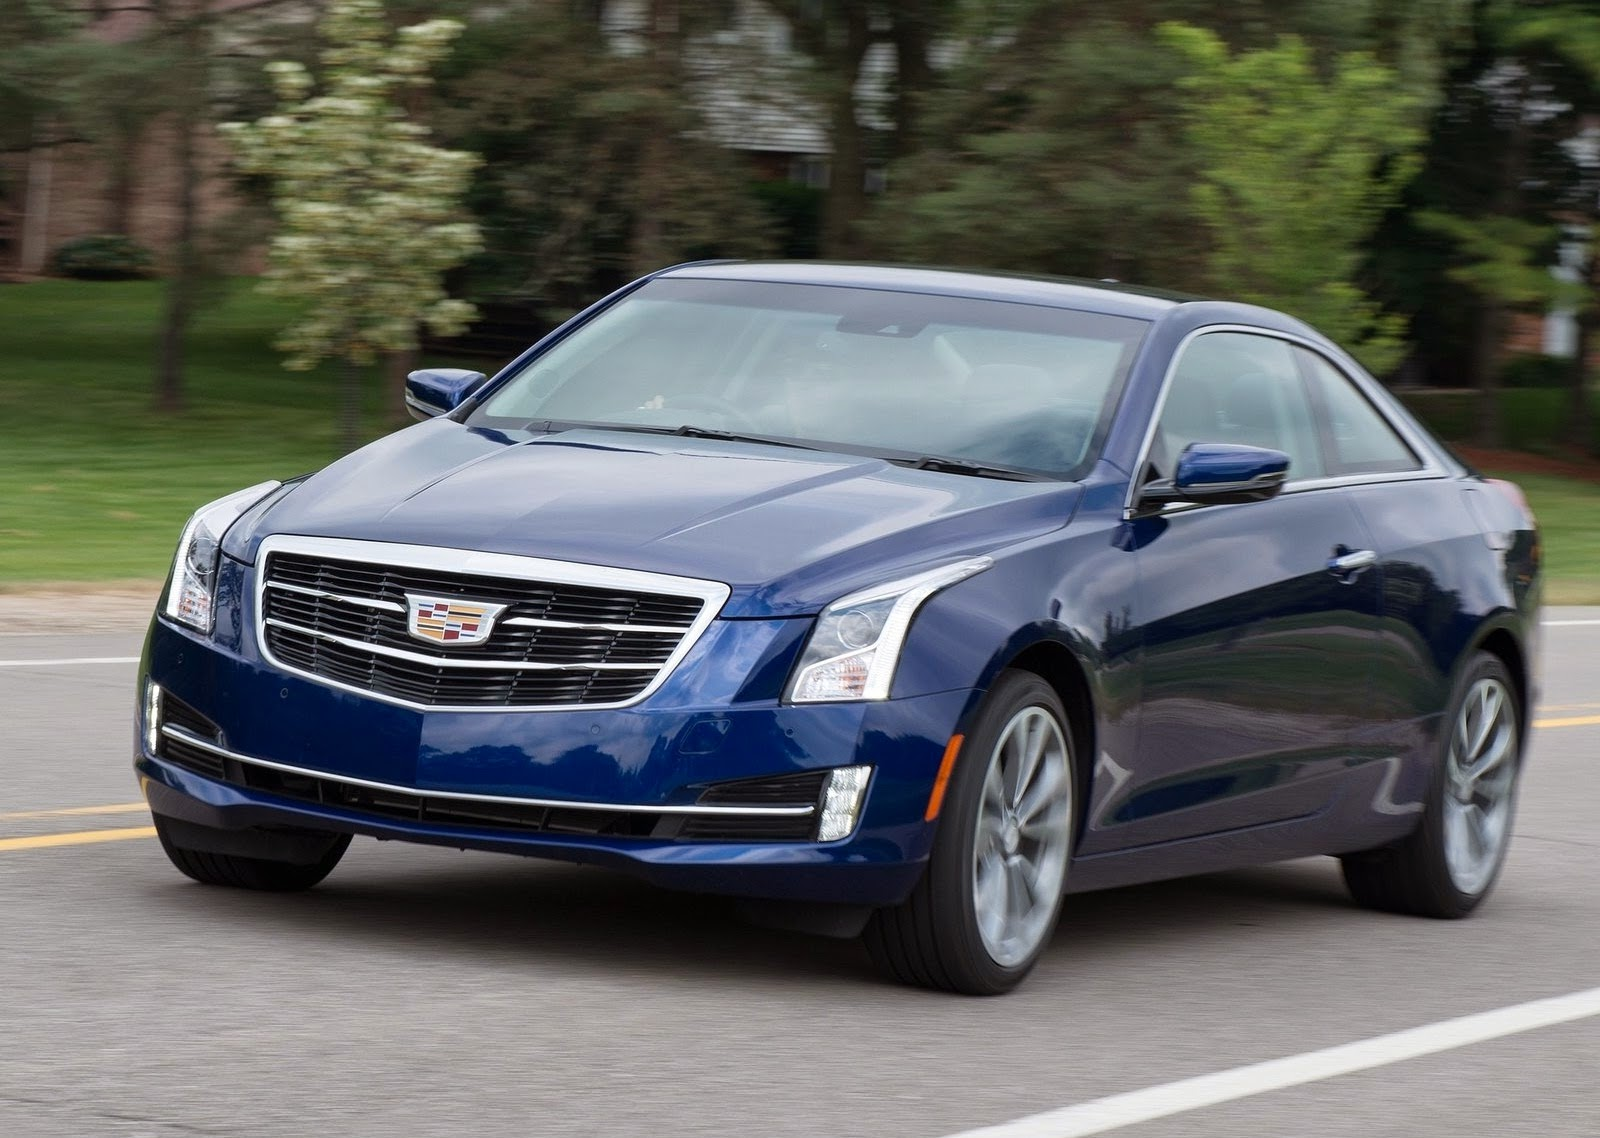 cadillac introduces 2015 ats coupe car reviews new car pictures for 2018 2019. Black Bedroom Furniture Sets. Home Design Ideas